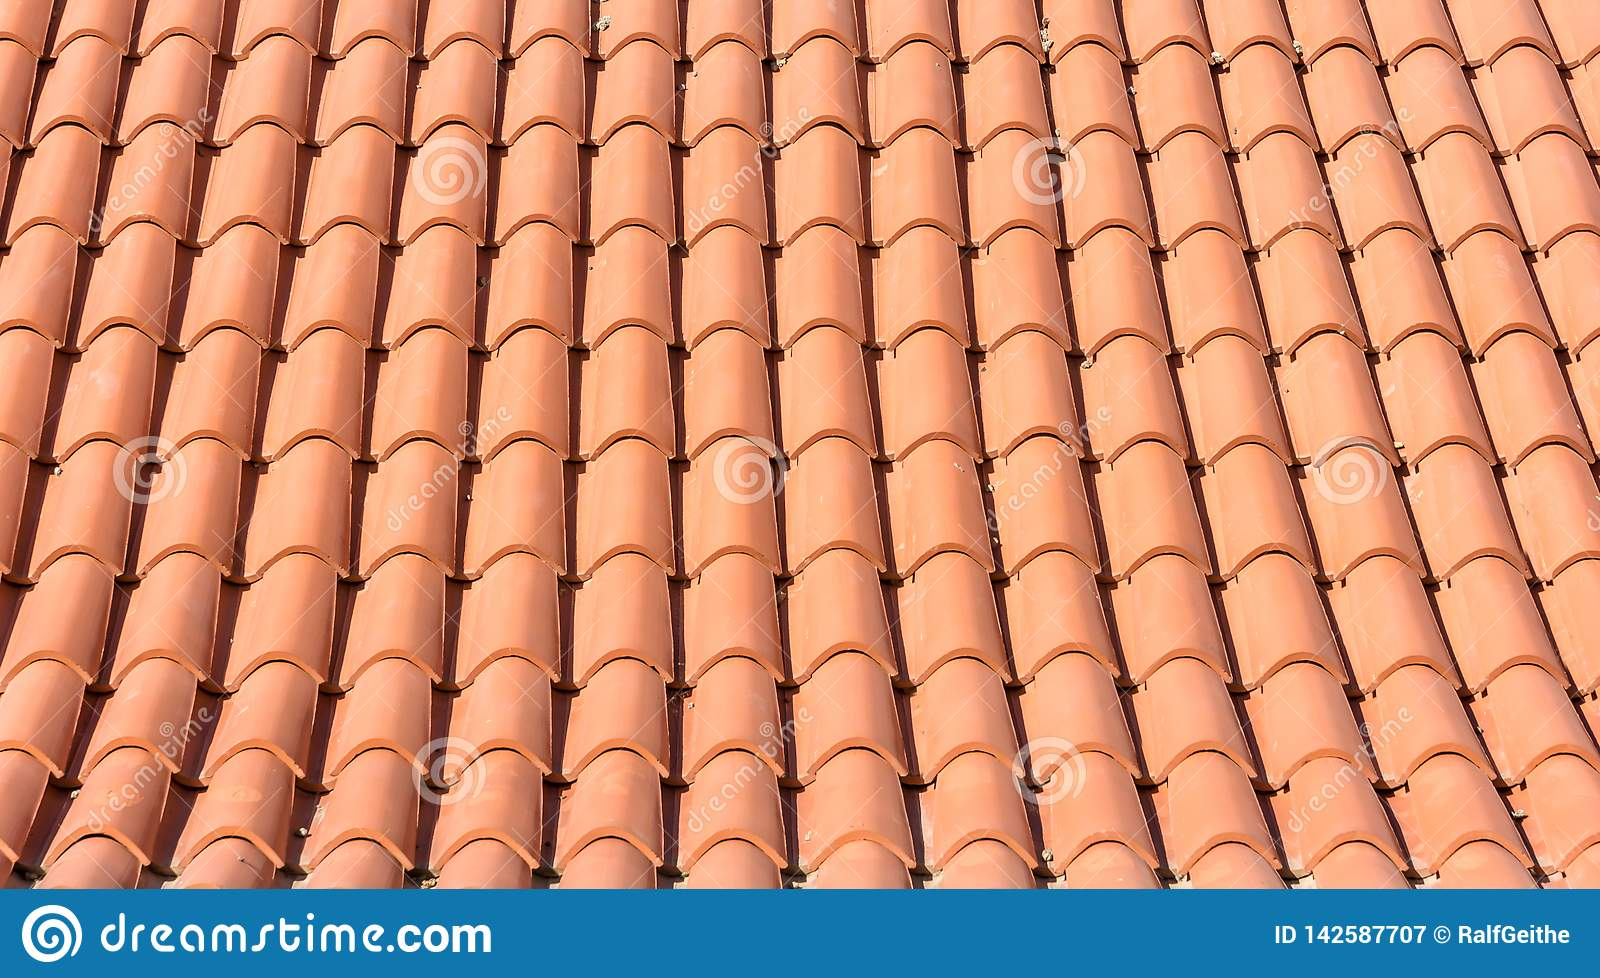 Texture of orange roof tiles of a new roof